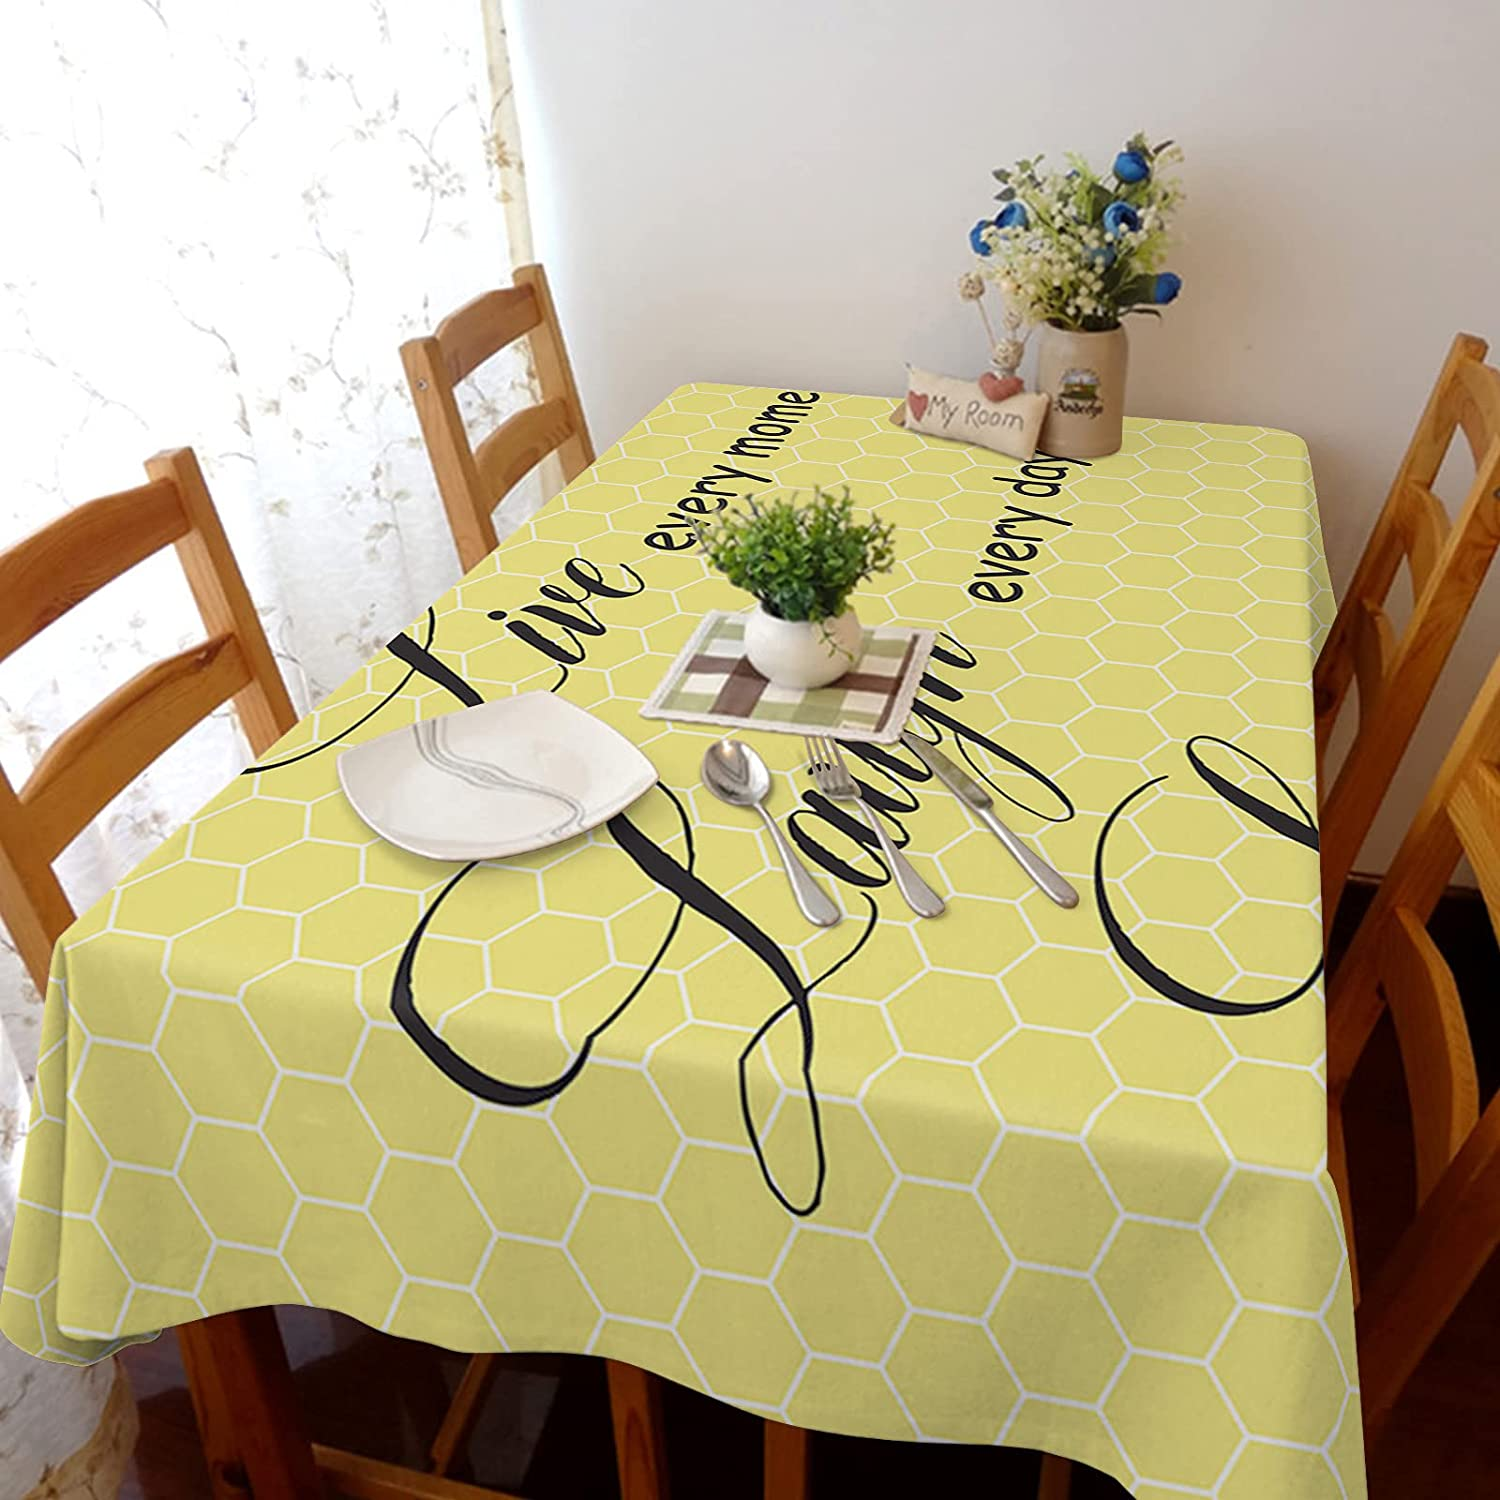 Tablecloth for Nippon regular agency Dinning Room Positive Quotes Hive Retro Max 40% OFF Yellow Ba